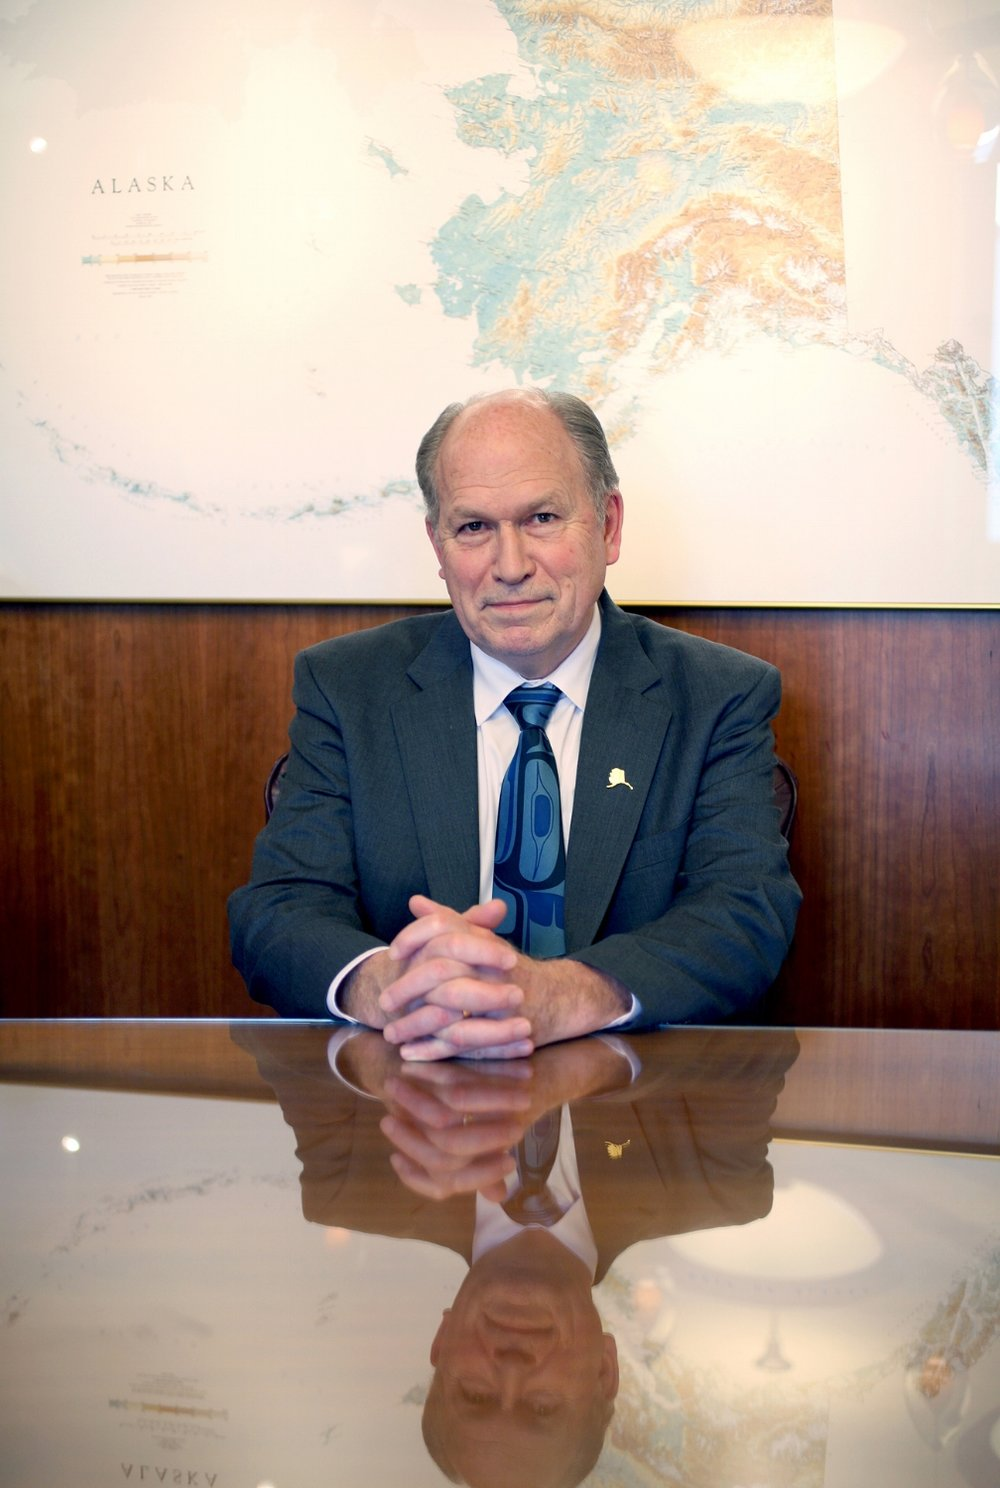 Bill Walker, Governor of Alaska